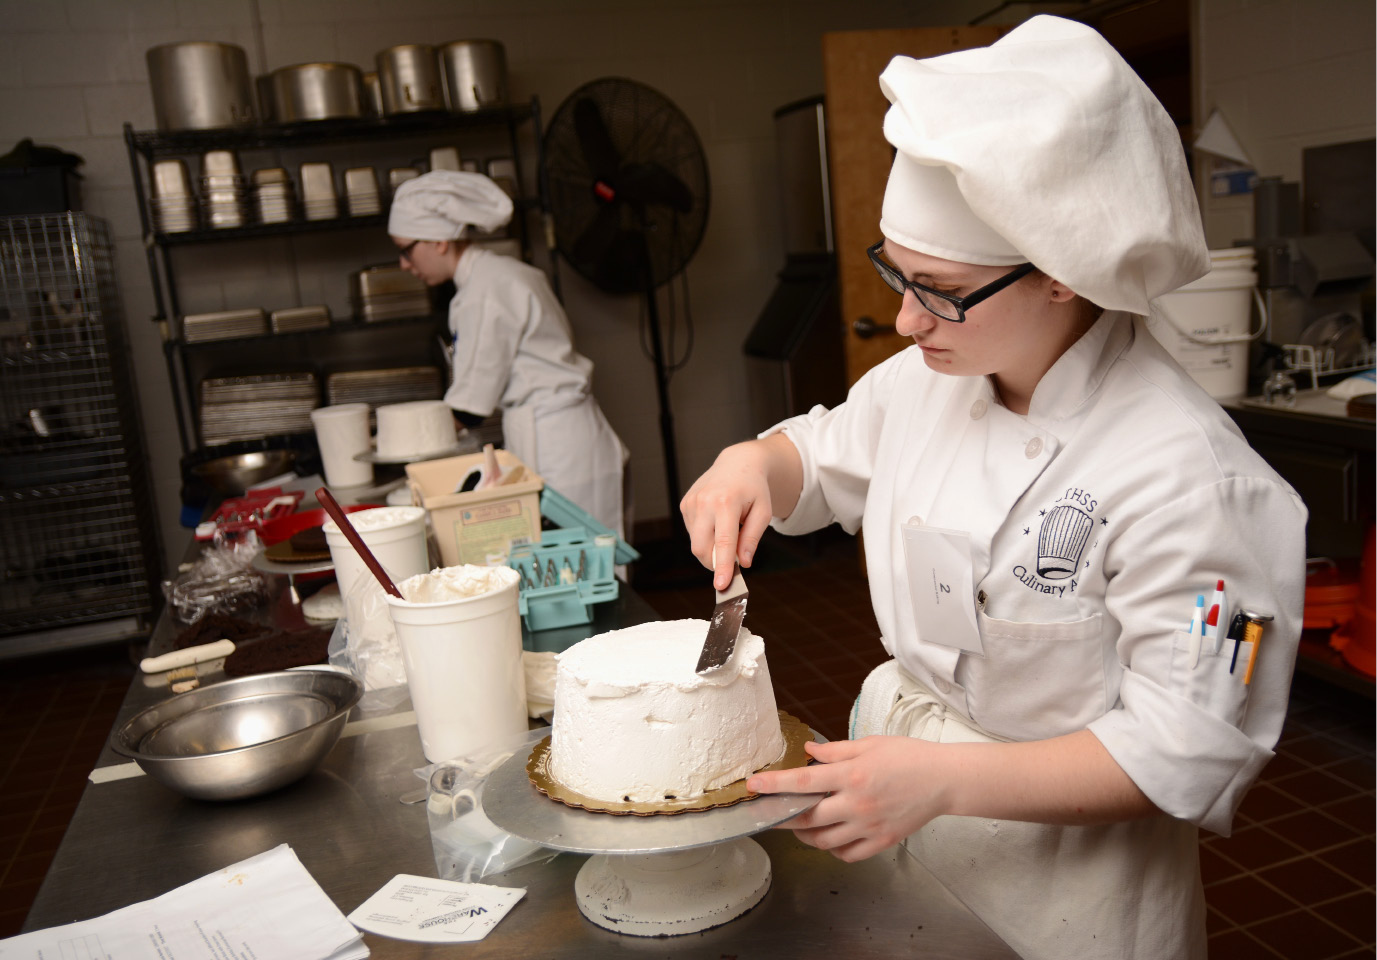 Lexi Hines, of Wilcox Technical High School, frosts a cake during a Skills USA competition at the school on Friday, March 31, 2017. | Bryan Lipiner, Record-Journal